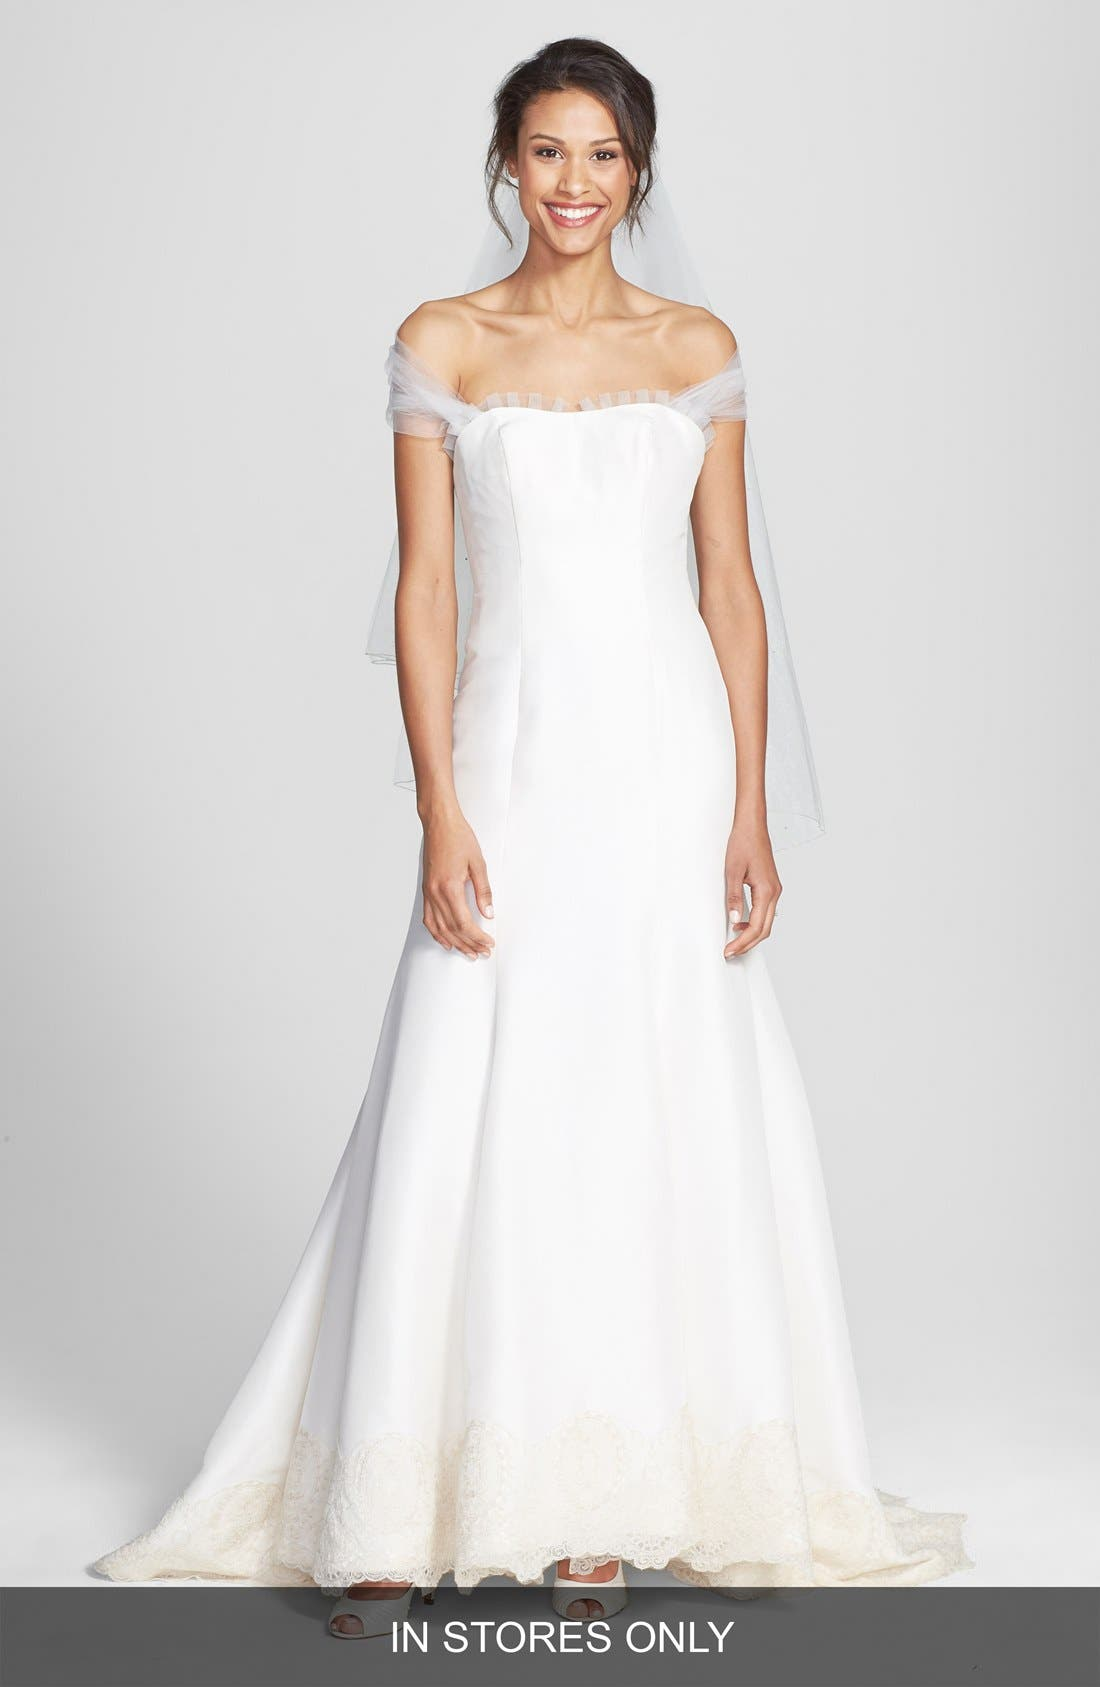 Main Image - Olia Zavozina 'Savannah' Removable Illusion Halter Lace Trim Silk Shantung Gown (In Stores Only)